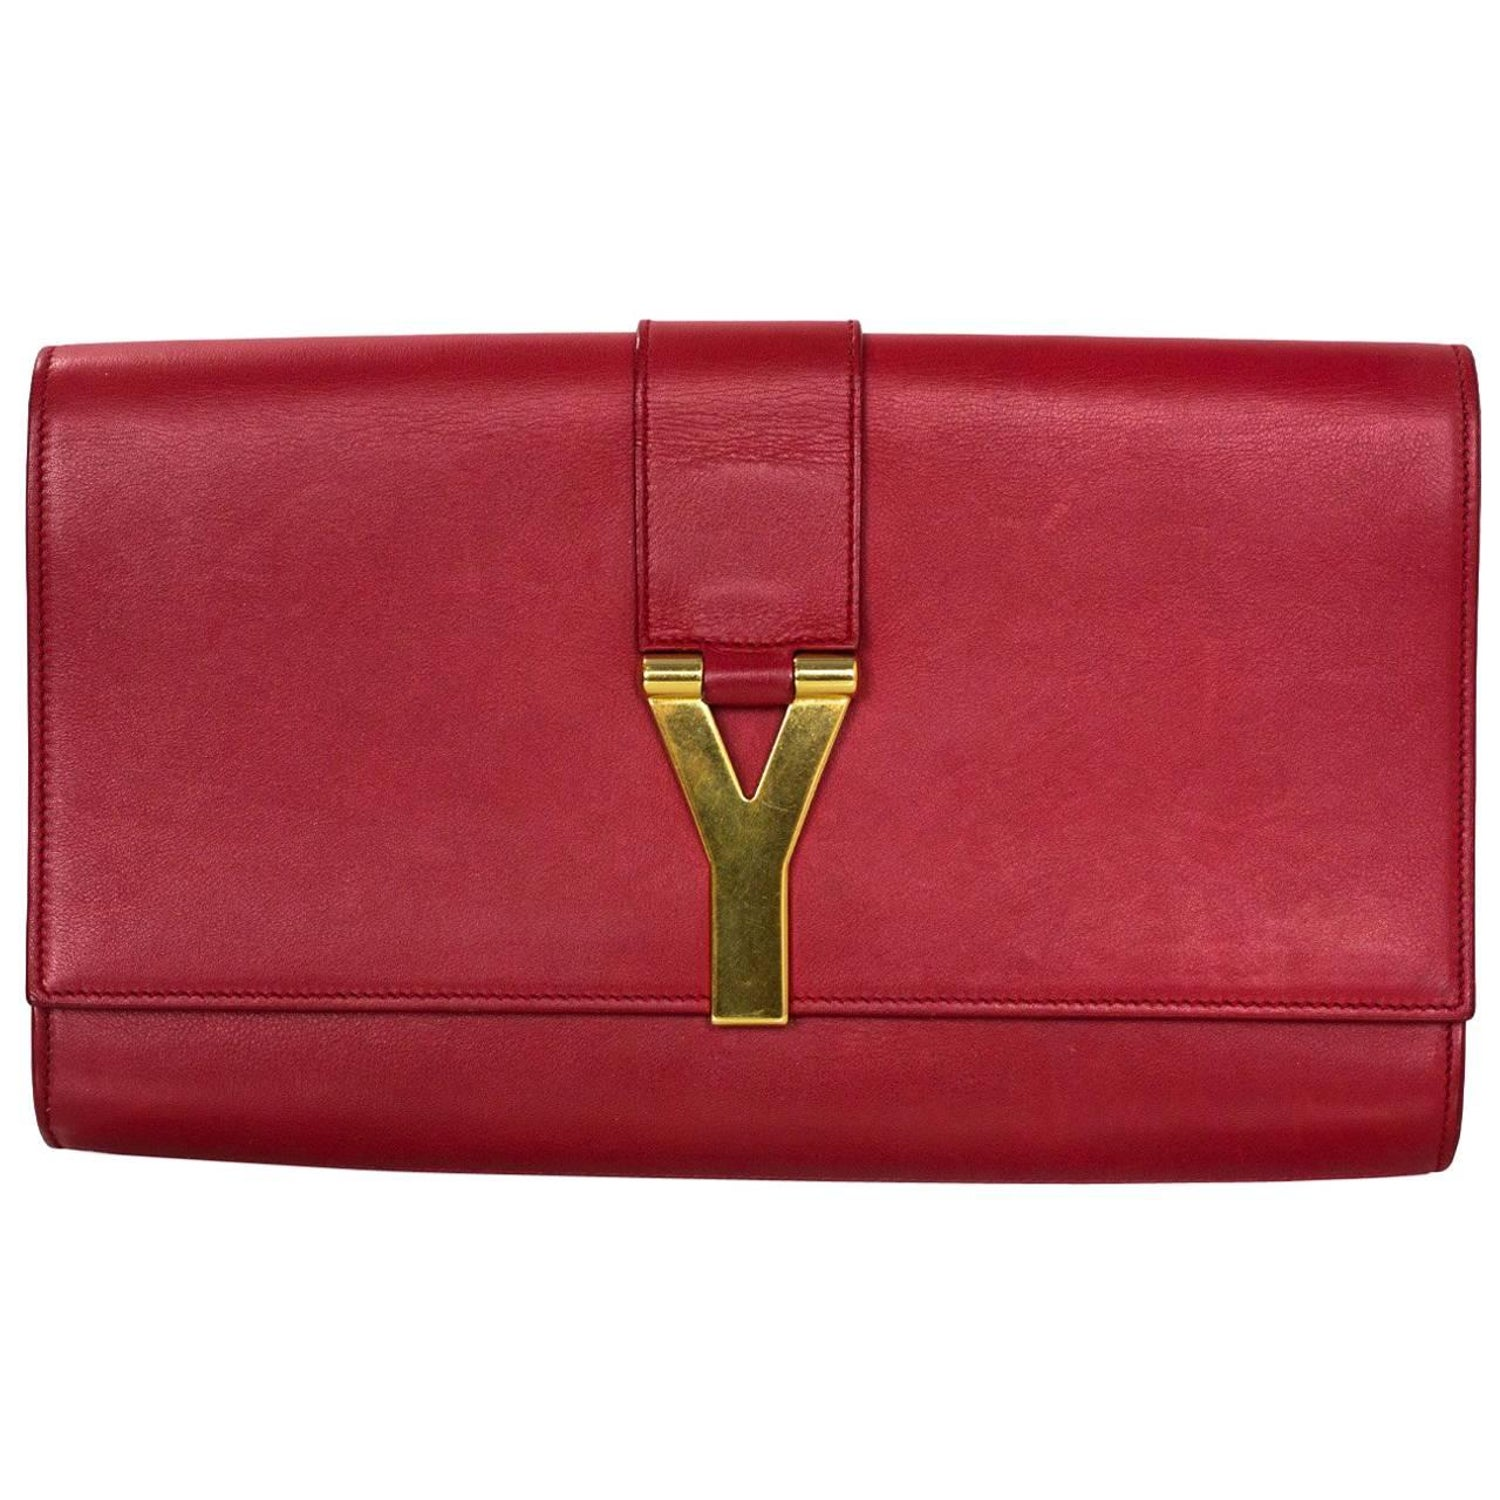 Saint Laurent Red Leather Cabas ChYc Clutch Bag For Sale at 1stdibs bffa1adc88420